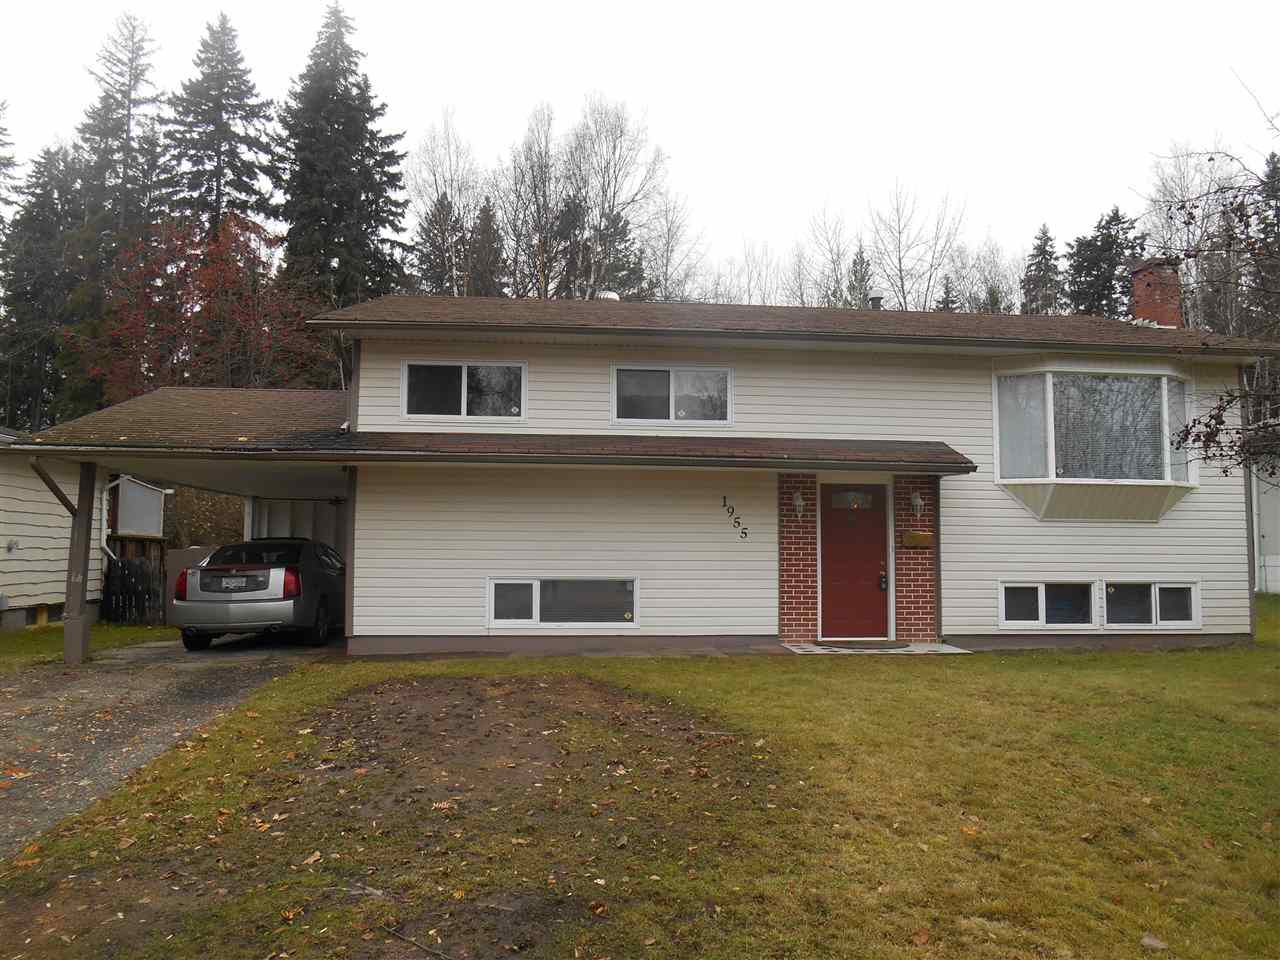 Main Photo: 1955 GARDEN Drive in Prince George: Seymour House for sale (PG City Central (Zone 72))  : MLS®# R2120742